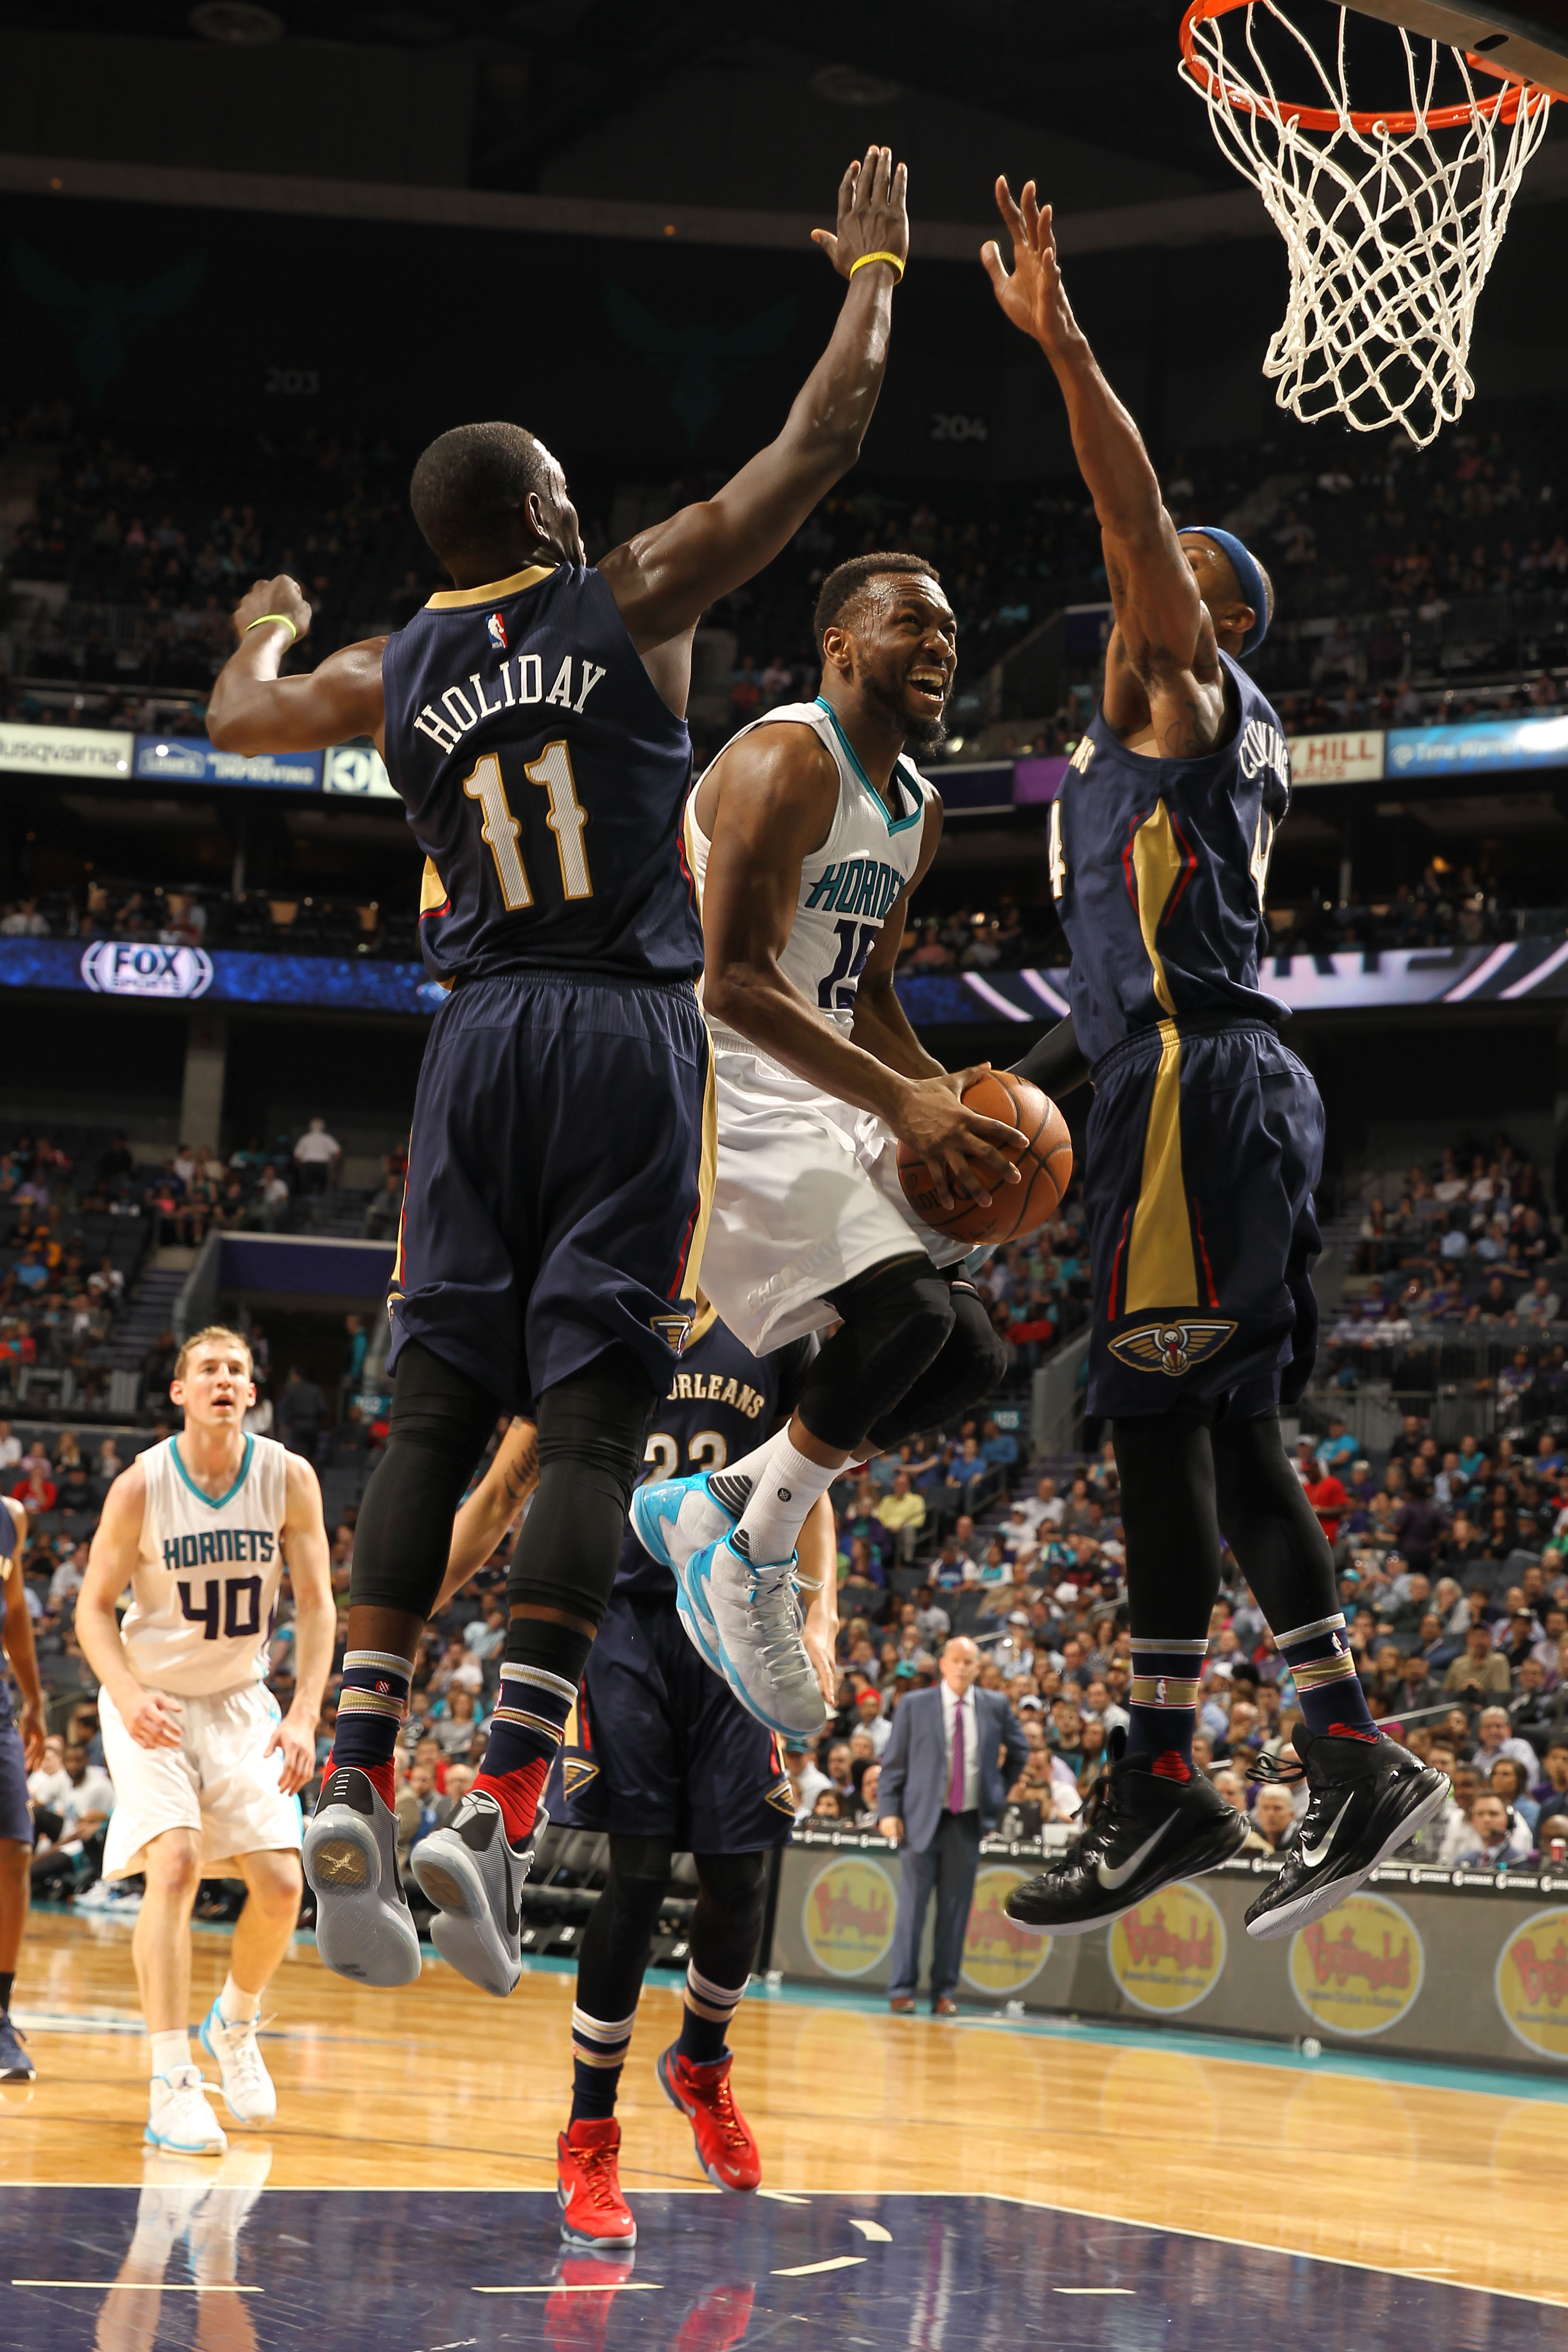 CHARLOTTE, NC - MARCH 09:  Kemba Walker #15 of the Charlotte Hornets shoots against Jrue Holiday #11 and Dante Cunningham #44 of the New Orleans Pelicans during the game at the Time Warner Cable Arena on March 09, 2016 in Charlotte, North Carolina. (Photo